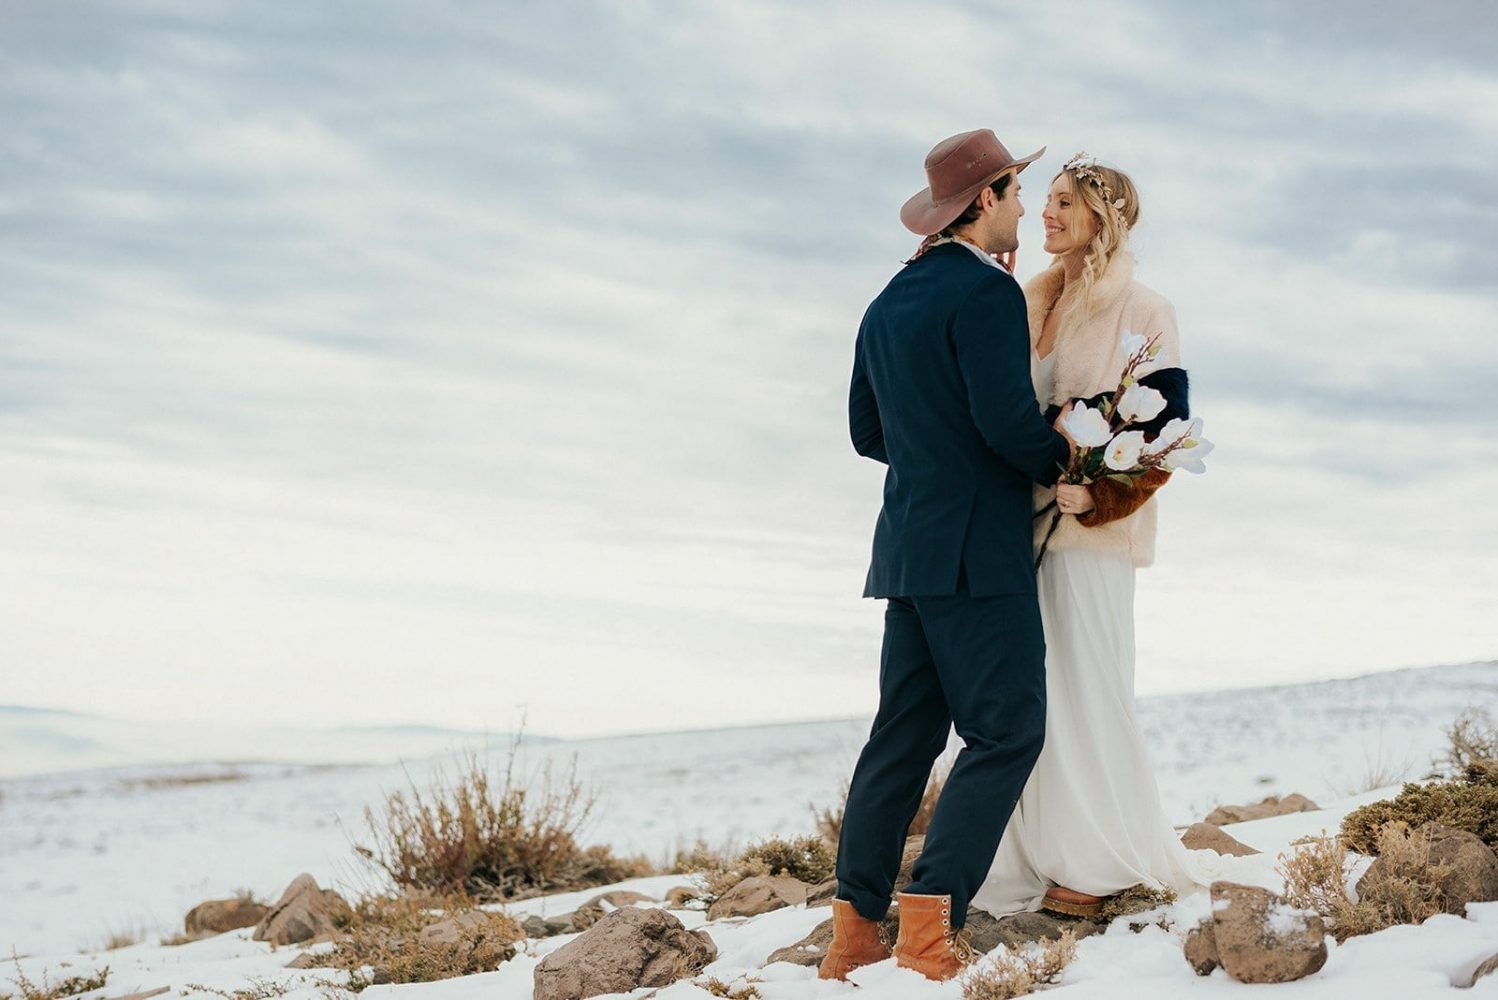 Elopement Wedding Chile-patagonia-los andes-mountains